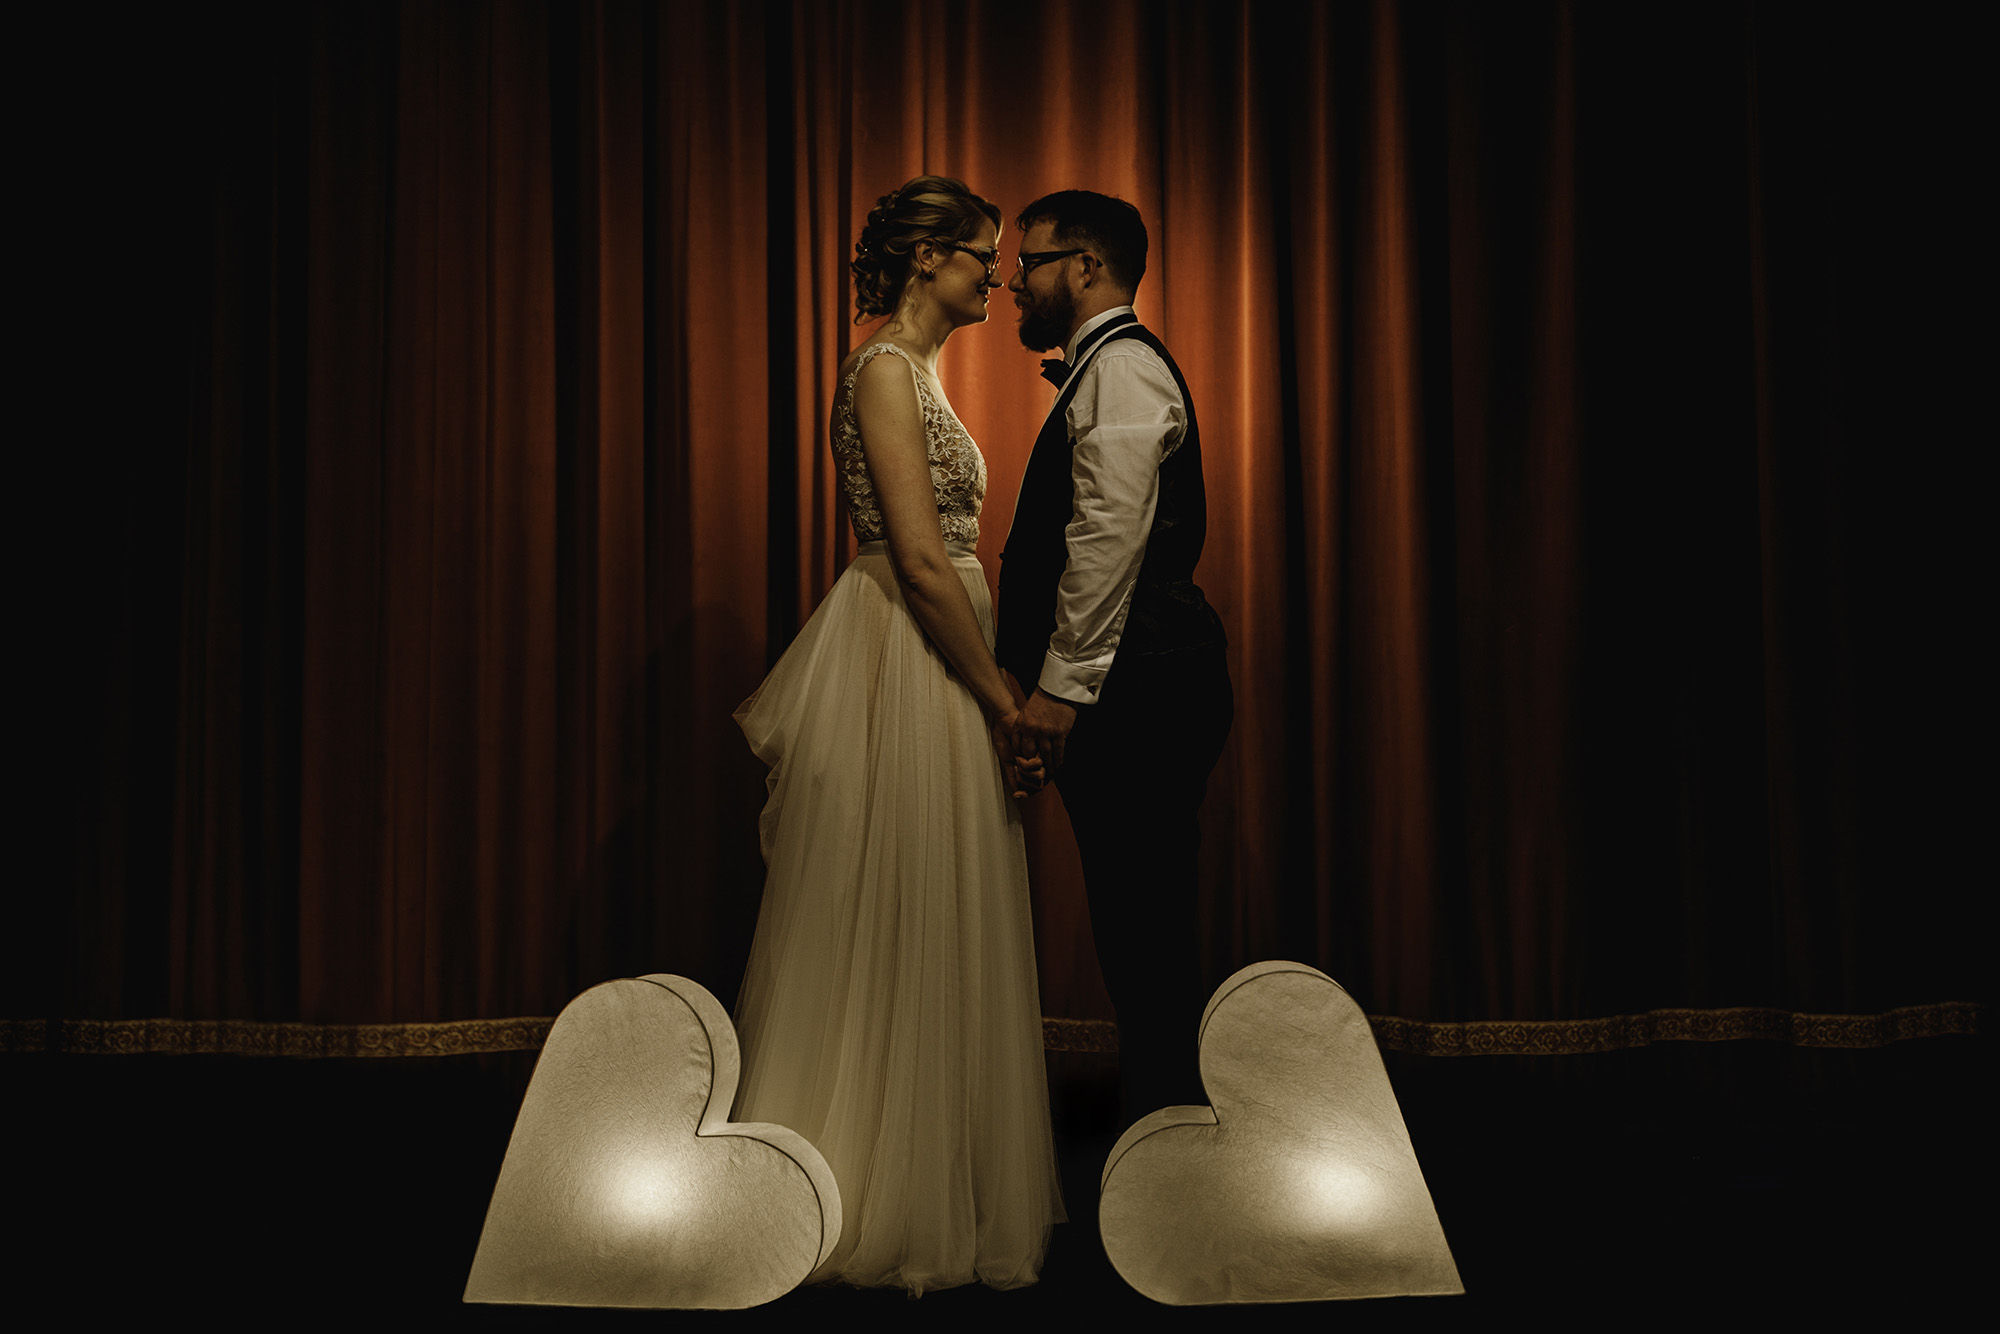 A bride and groom standing by a red theatre curtain holding hands with two heart shaped lights at either side of them